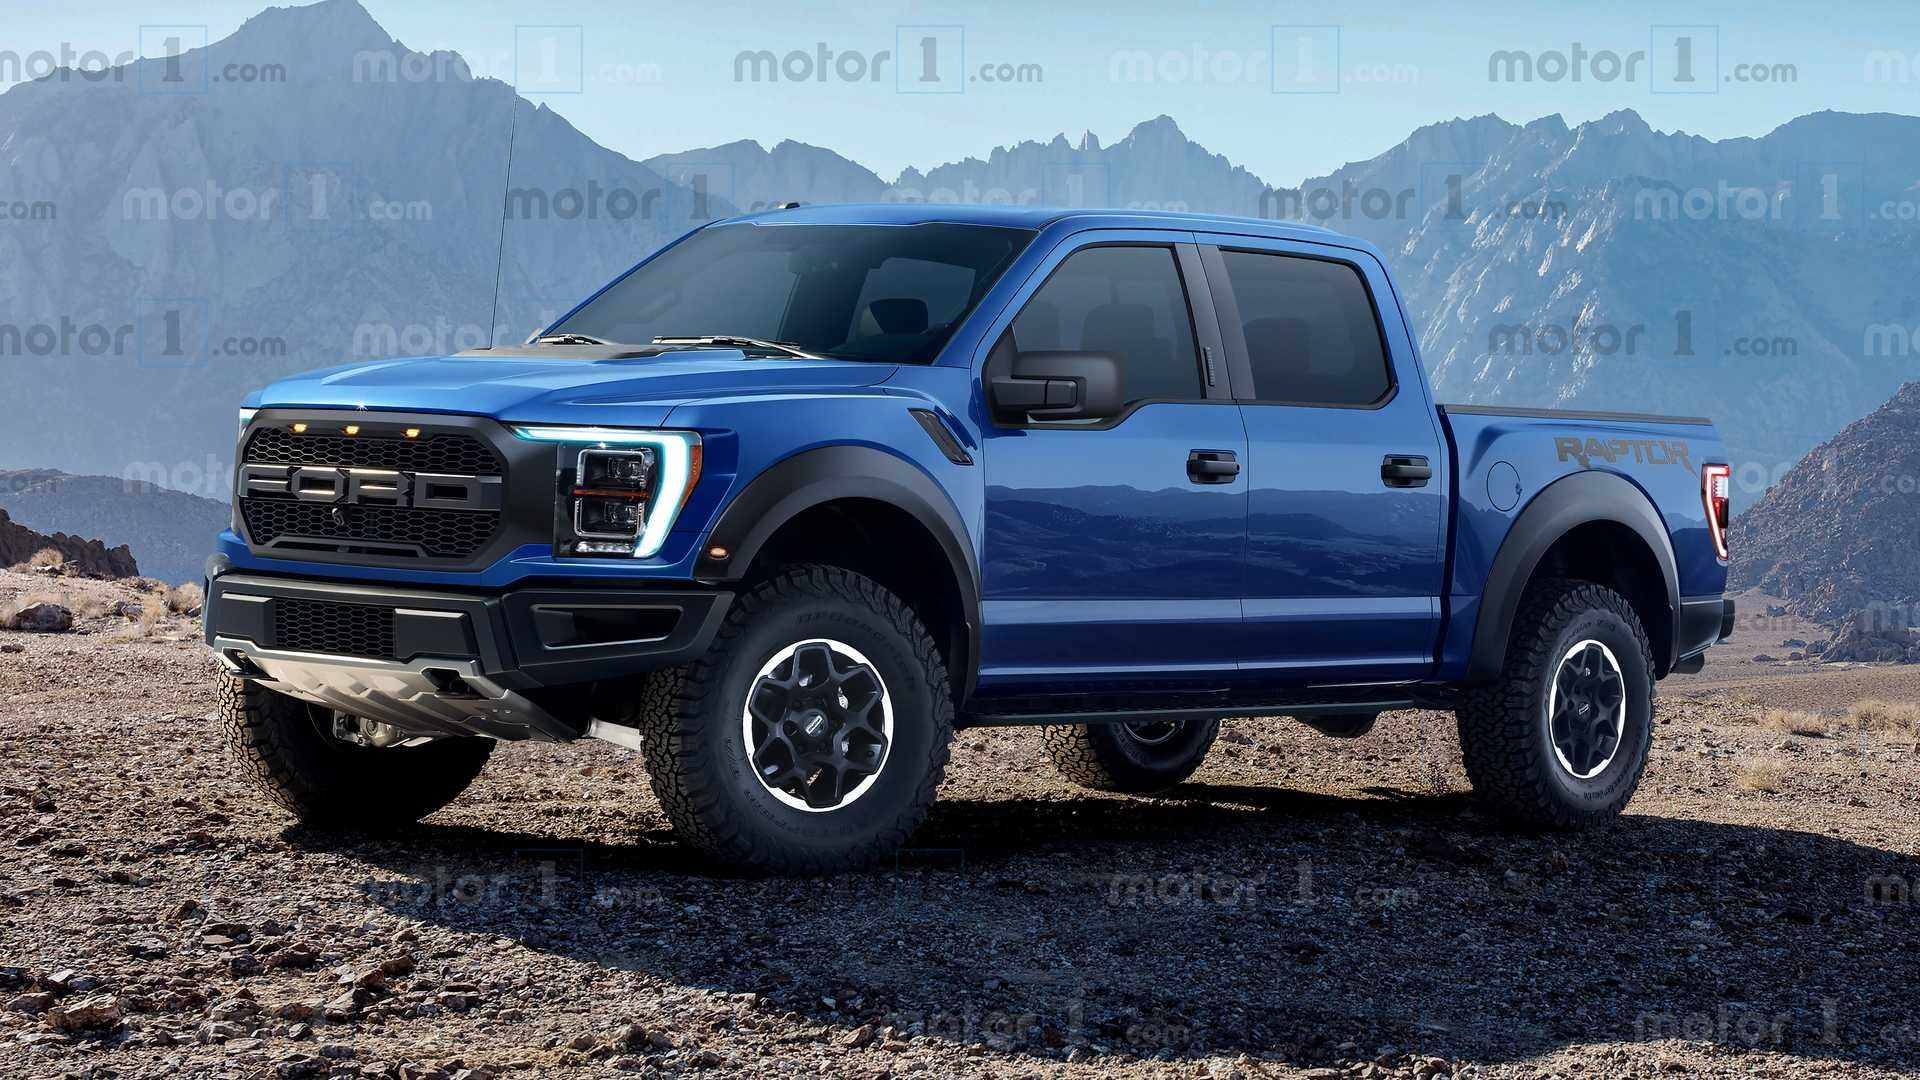 Pin By Zackyboy On Car And Trucks Ford F150 Raptor Ford Raptor 2021 Ford F150 Raptor